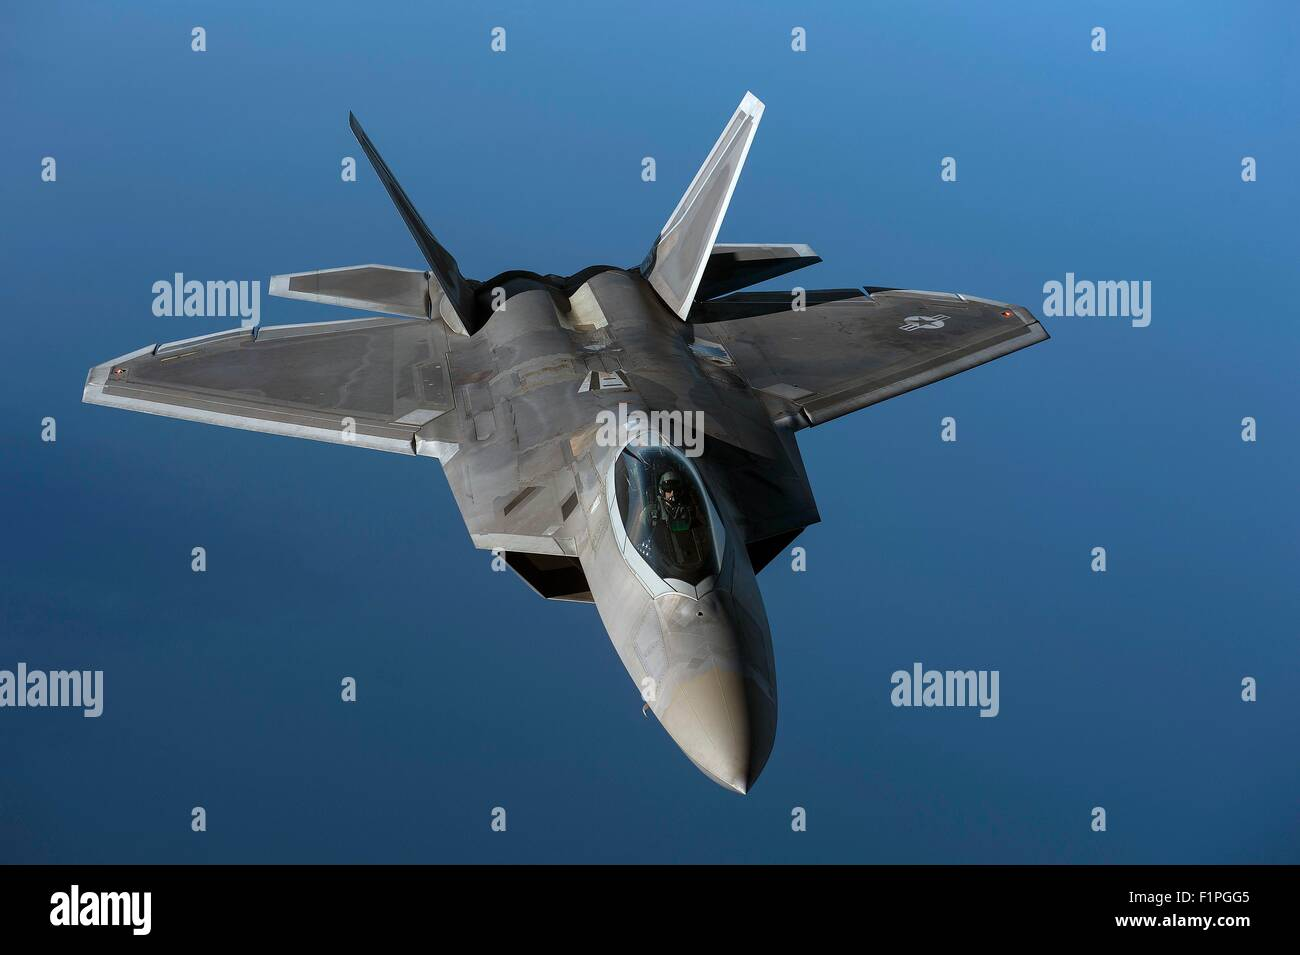 A U.S. Air Force F-22 Raptor from the 95th Fighter Squadron, Tyndall Air Force Base, Fla., flies over the Baltic - Stock Image